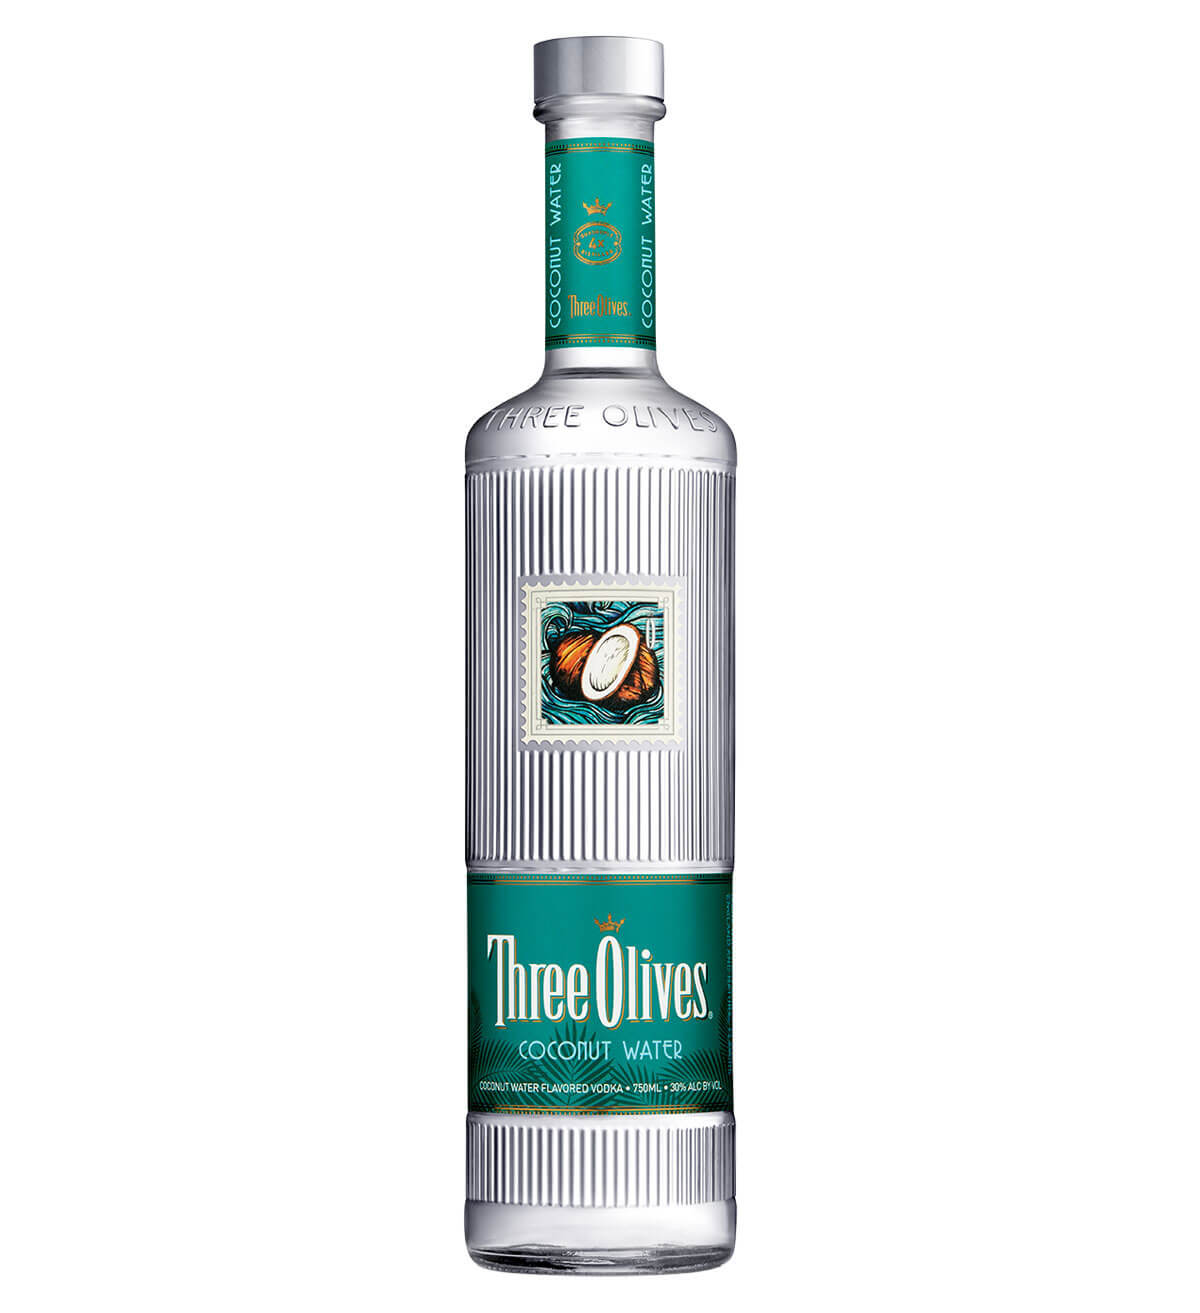 Three Olives Coconut Water Vodka, bottle on white